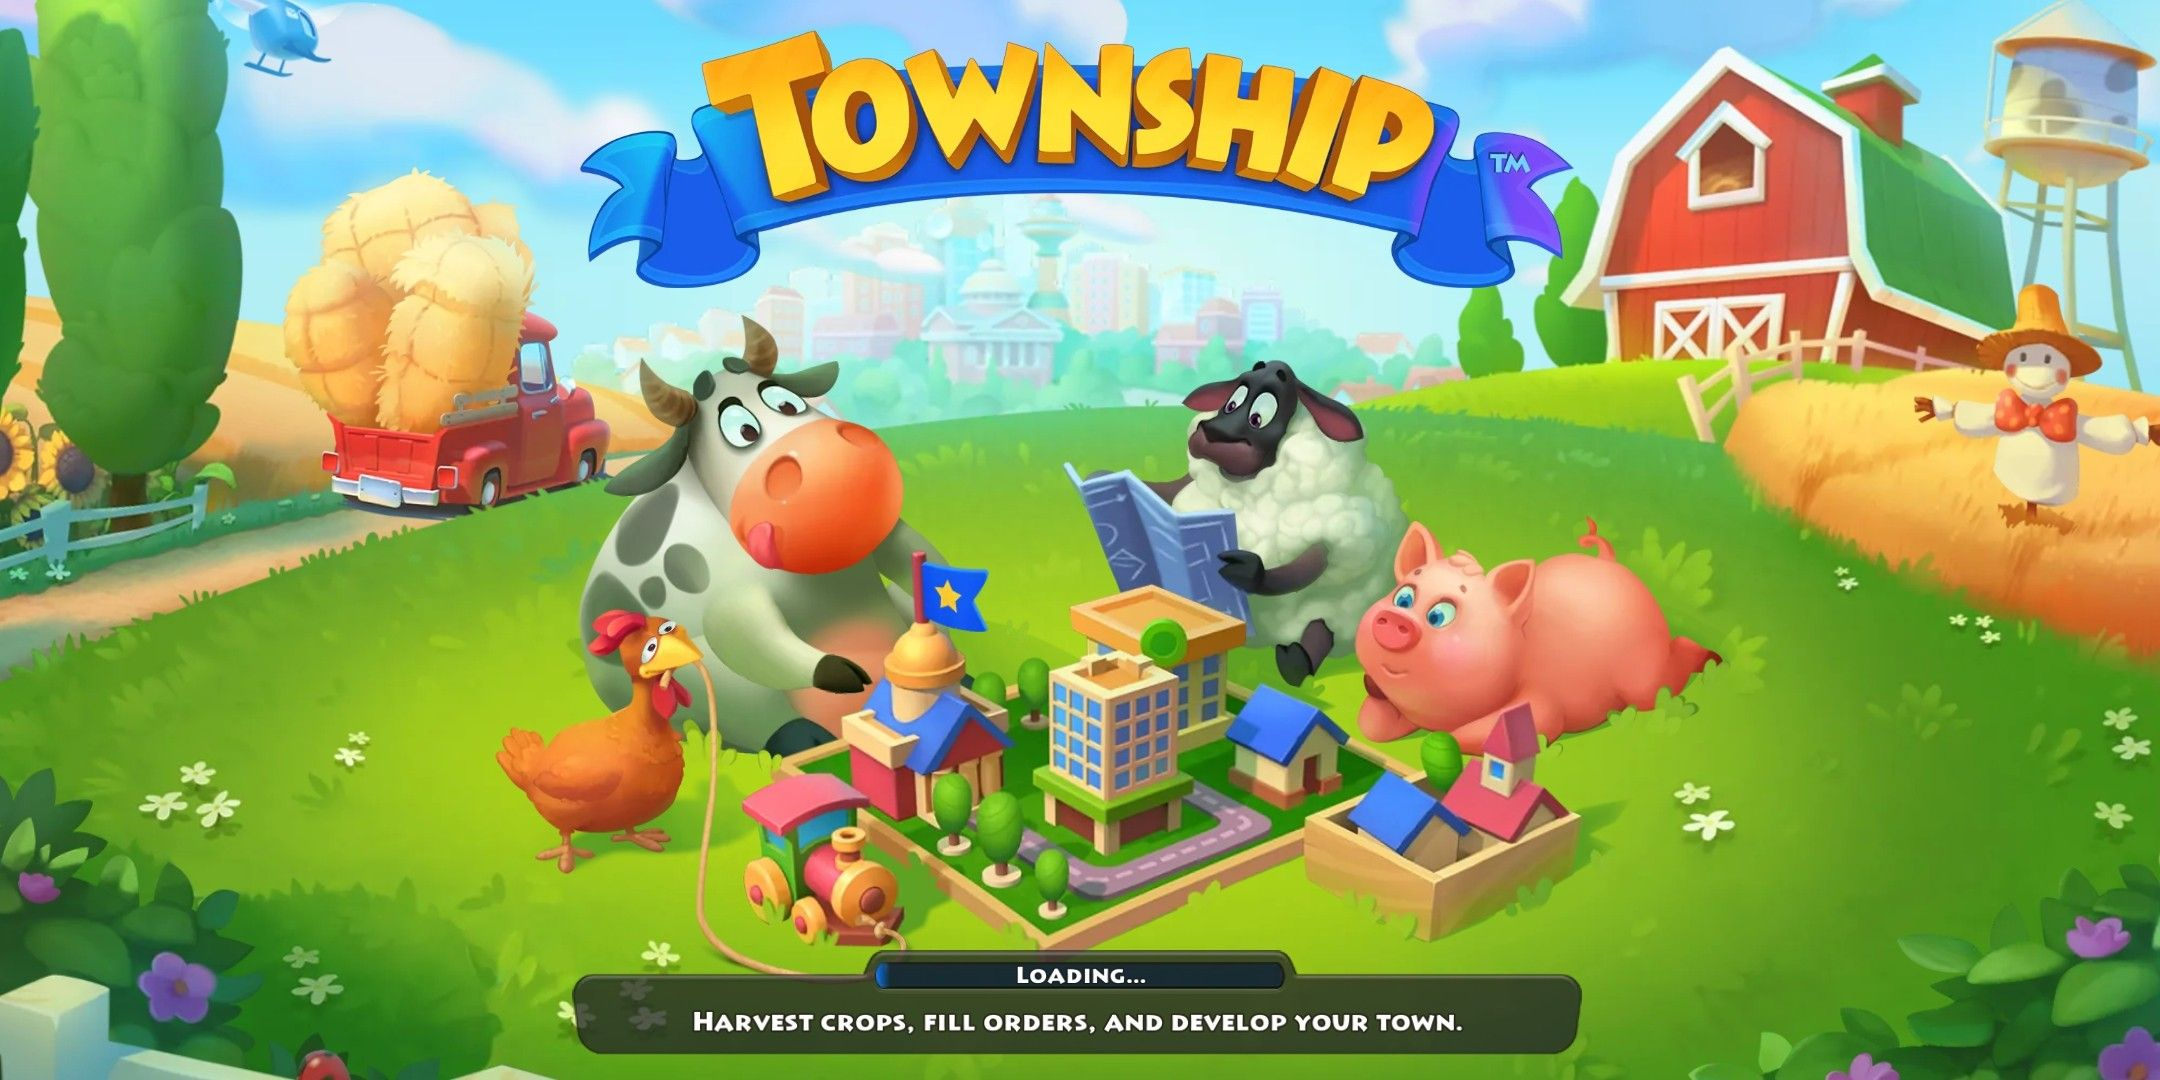 Township Mod Apk : How is the User Interface and Gameplay?